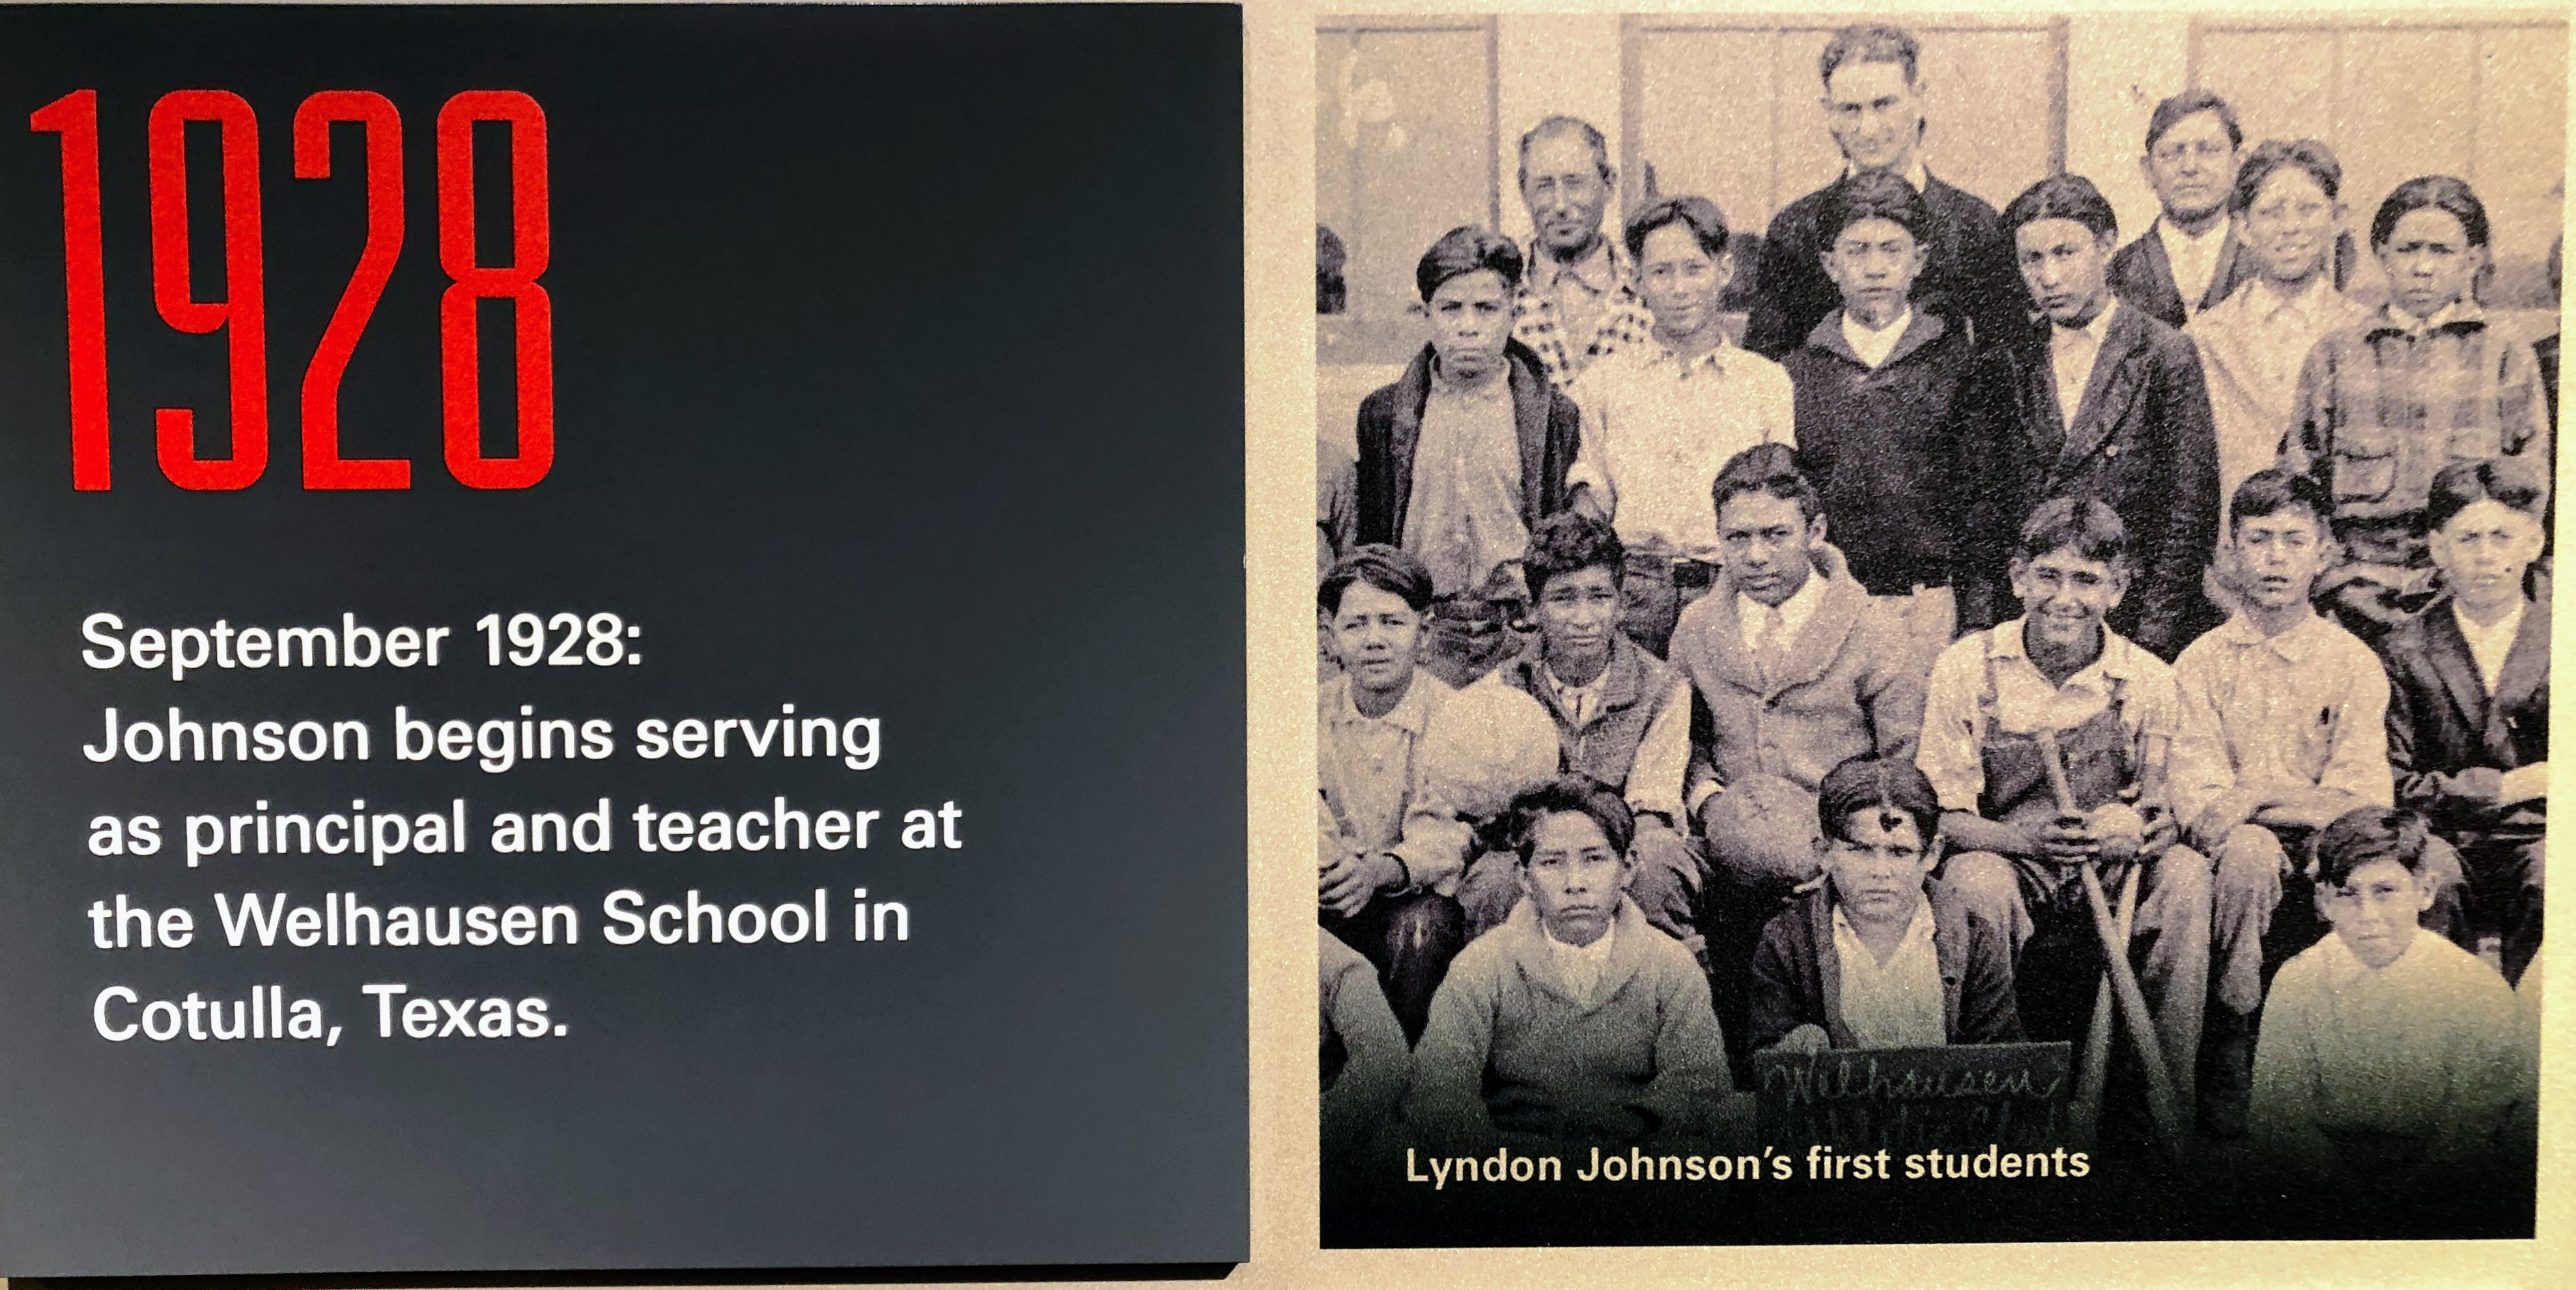 LBJ as a school teacher